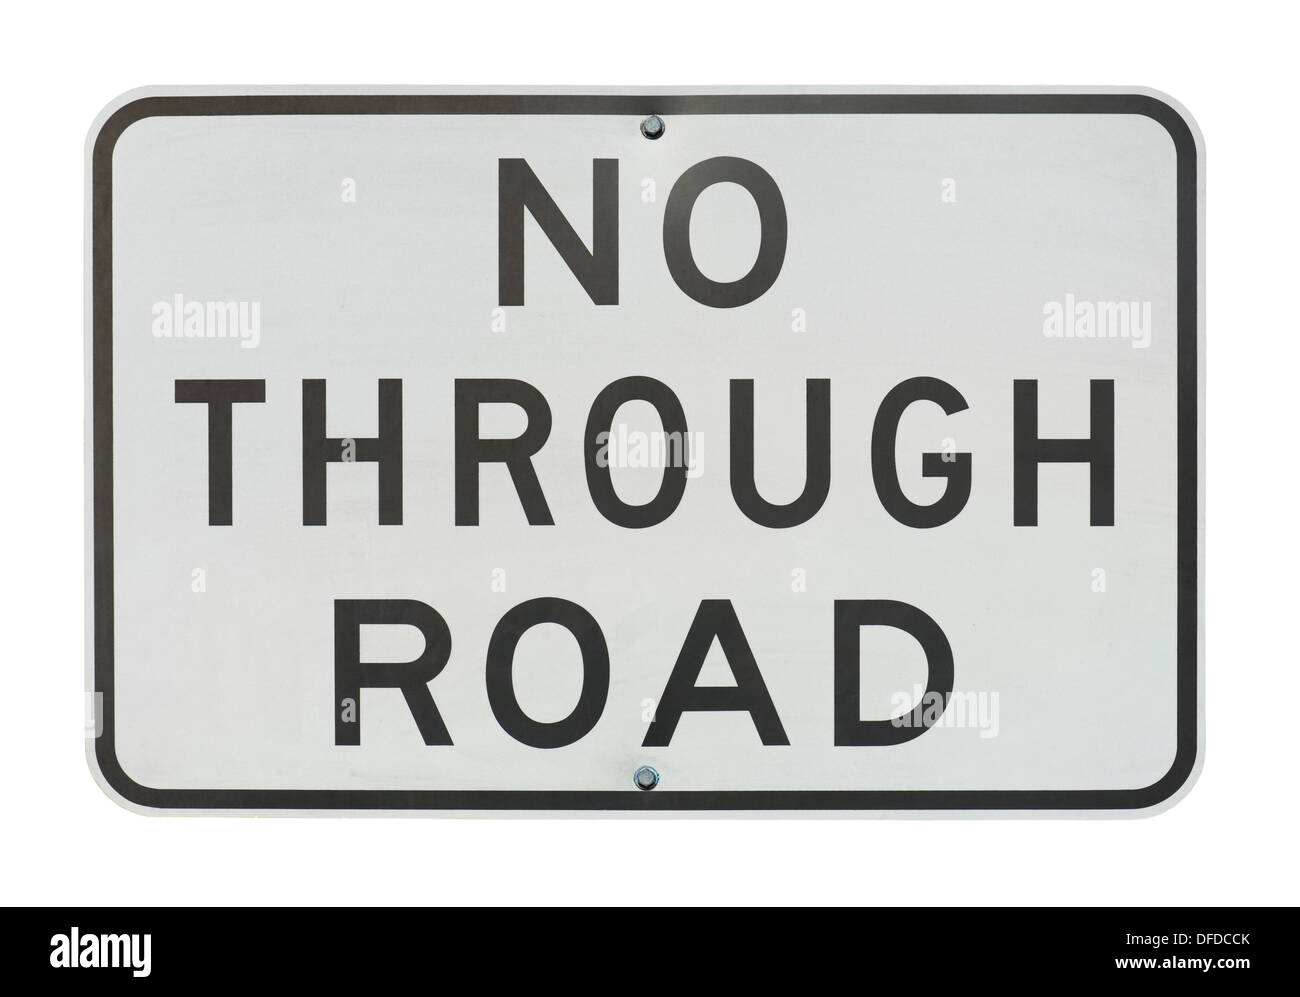 old no through road traffic sign isolated on a white background. - Stock Image